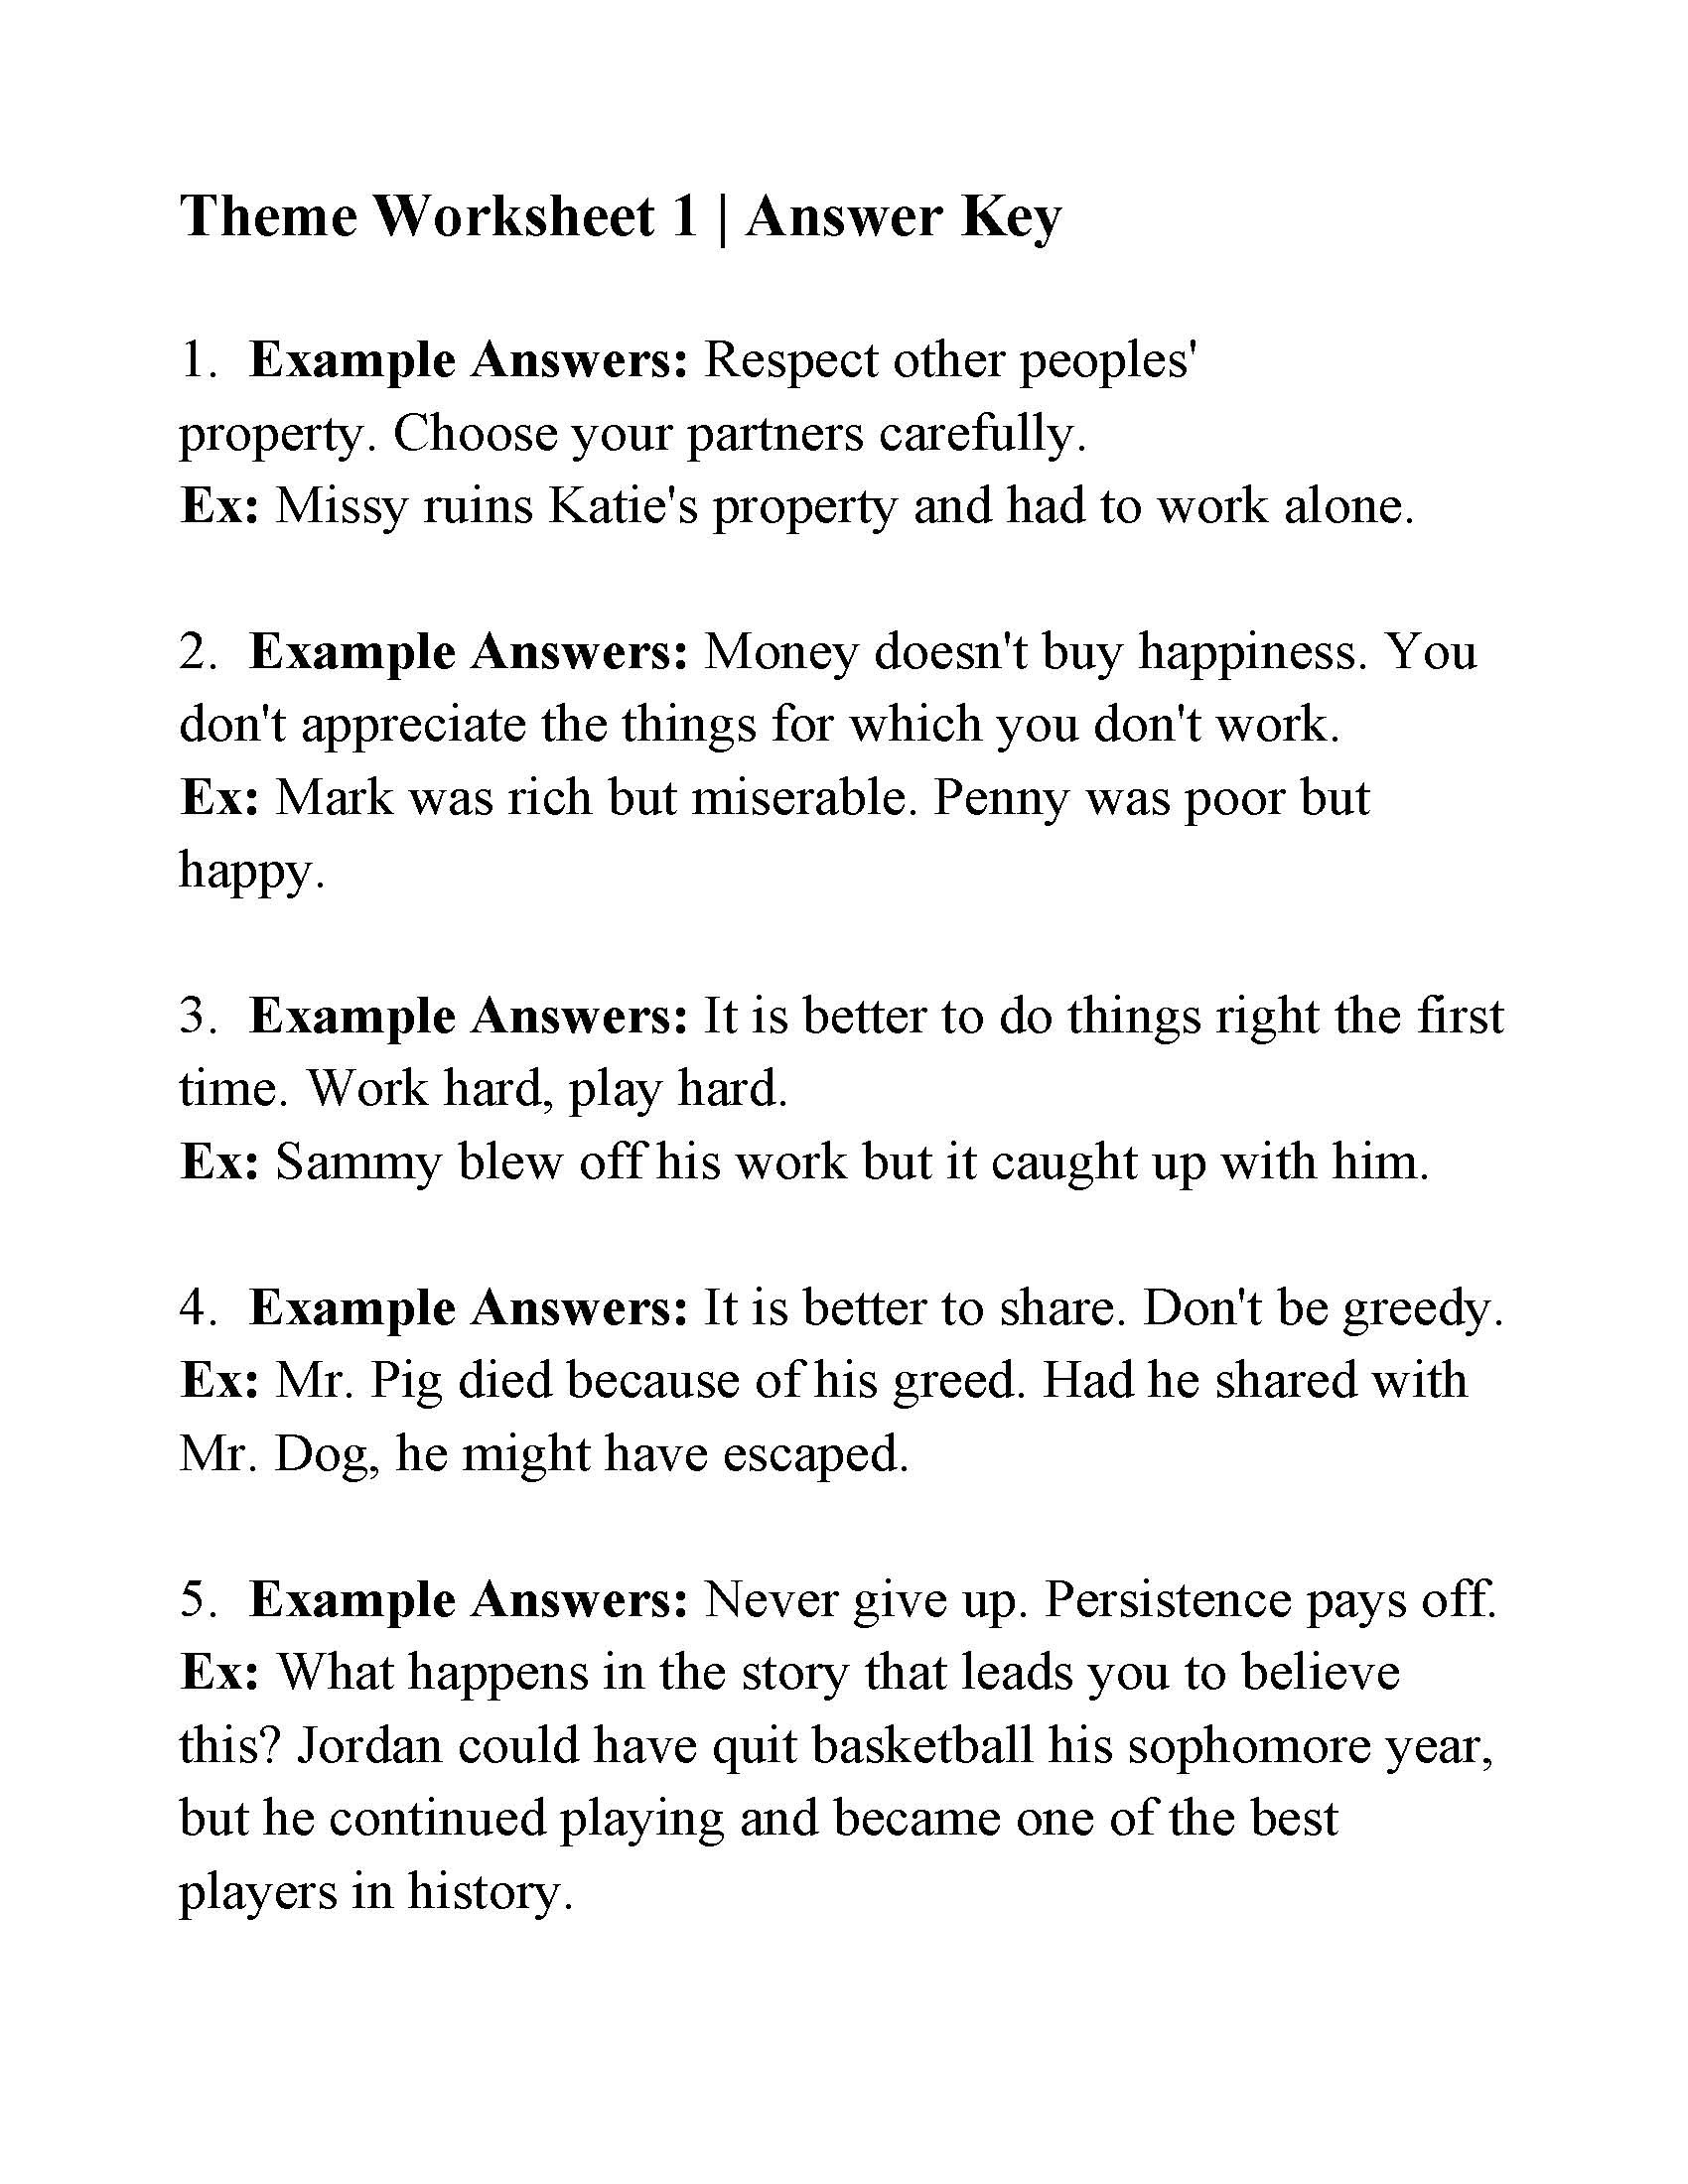 Theme Worksheets Grade 5 theme Worksheet 1